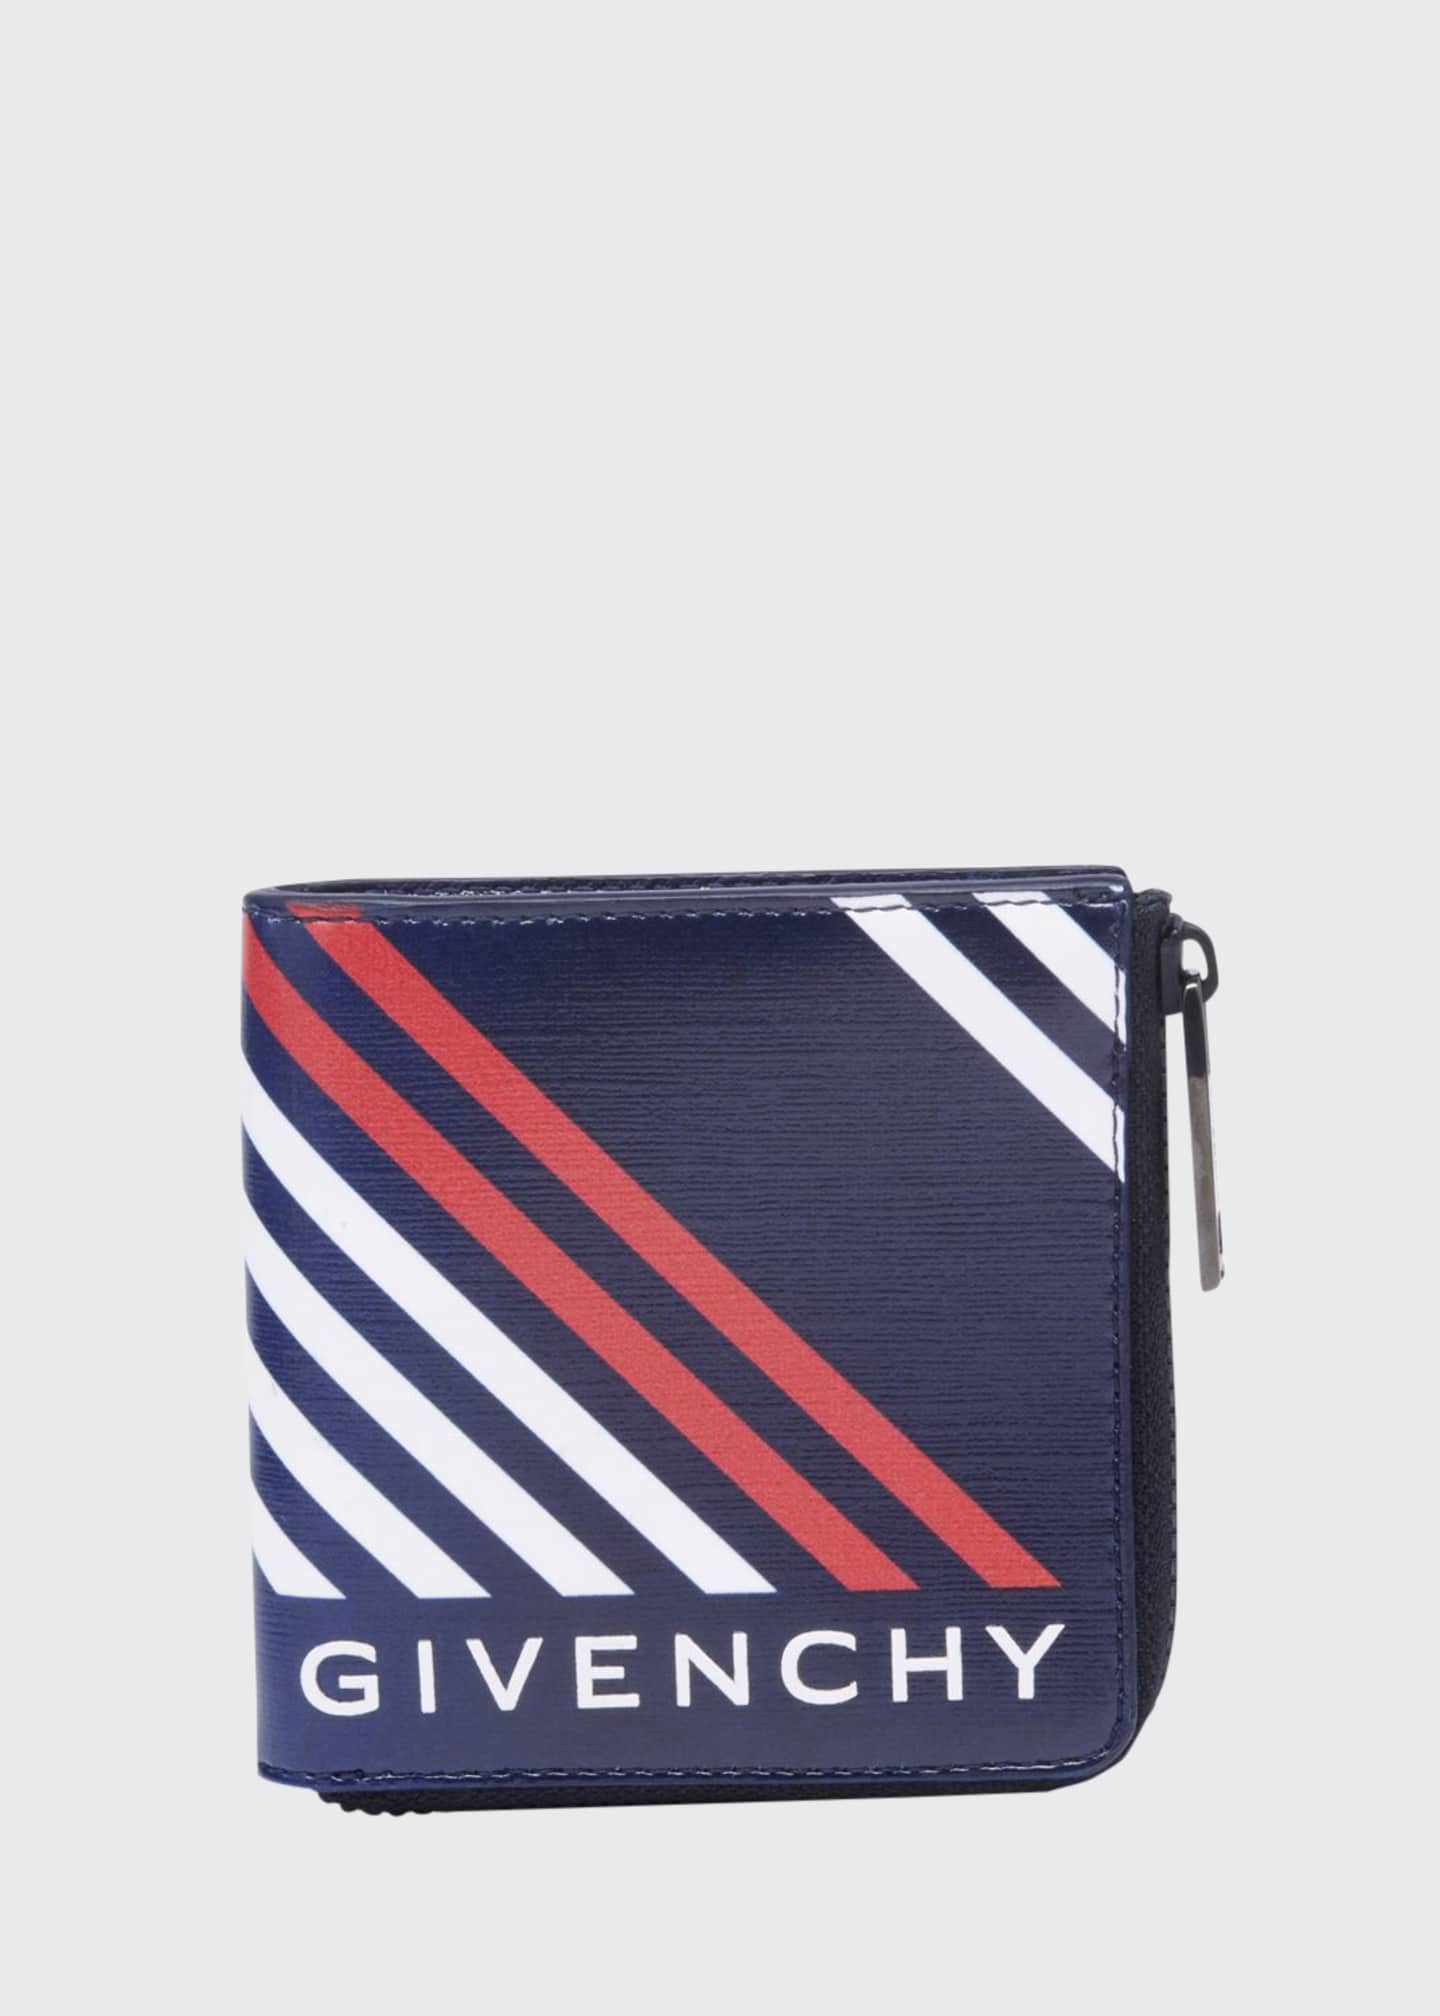 Givenchy Men's Lines-Print Canvas Zip Wallet